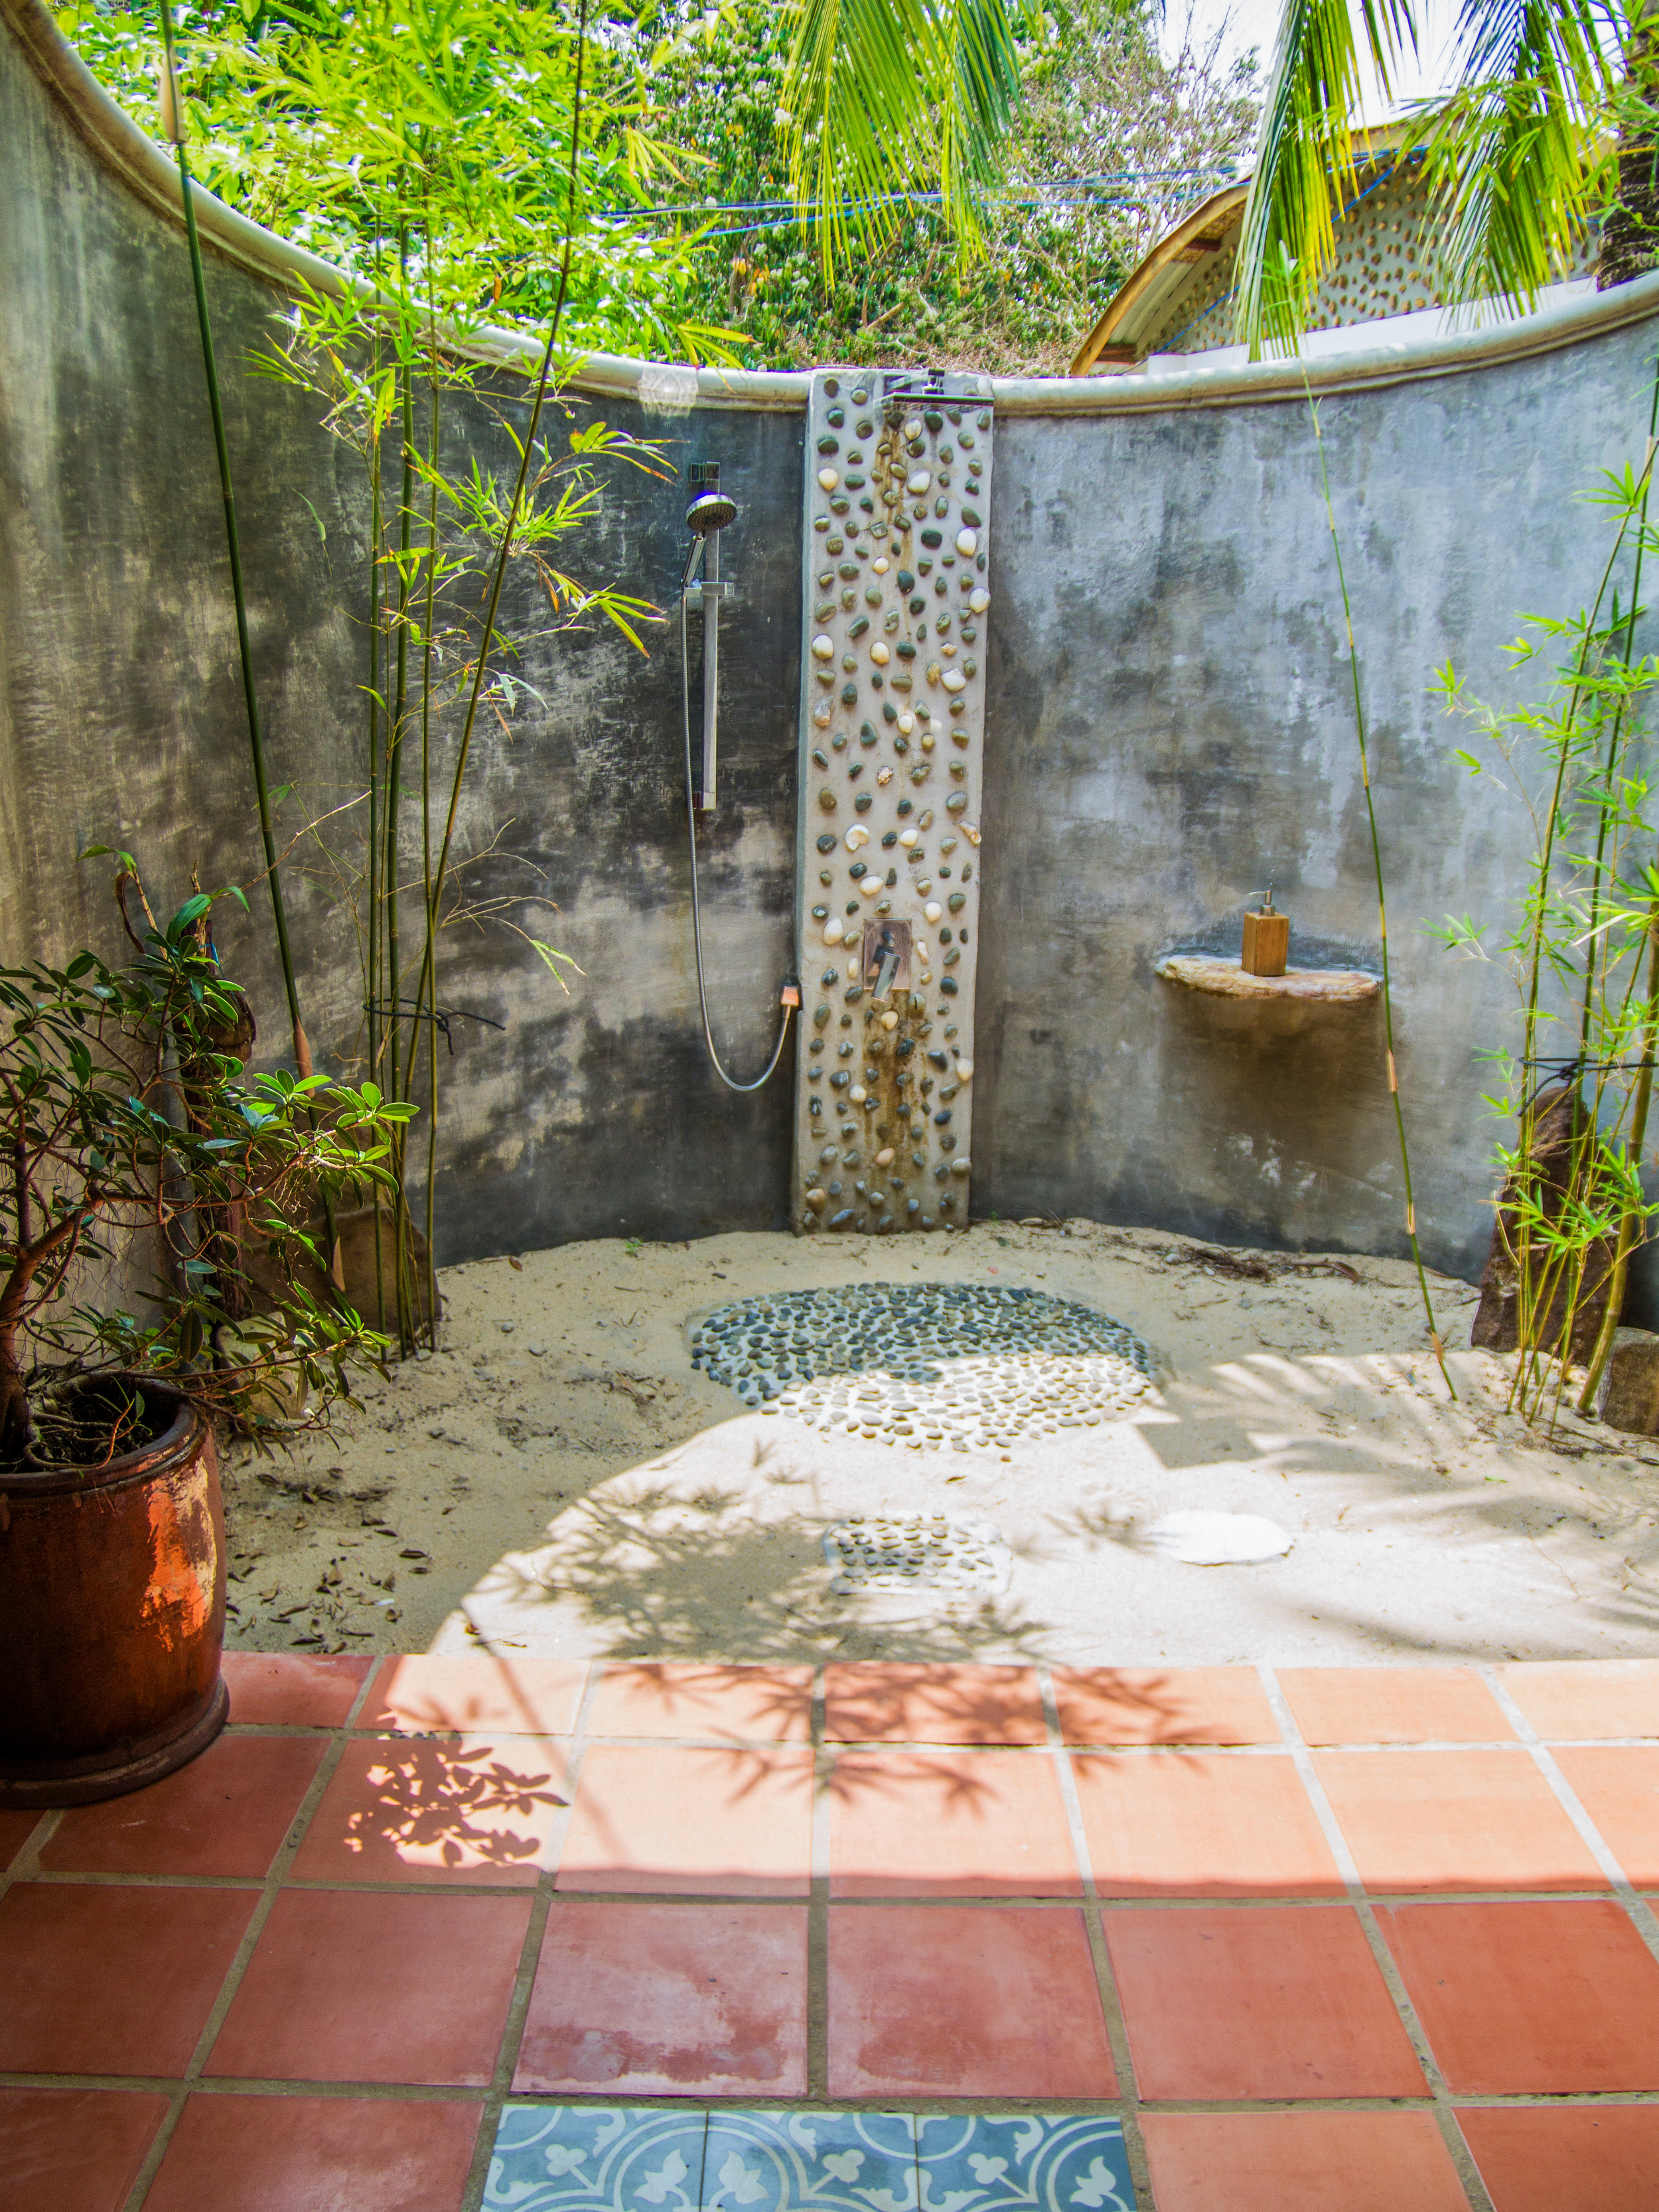 phuo-quoc-bamboo-cottage-42.jpg